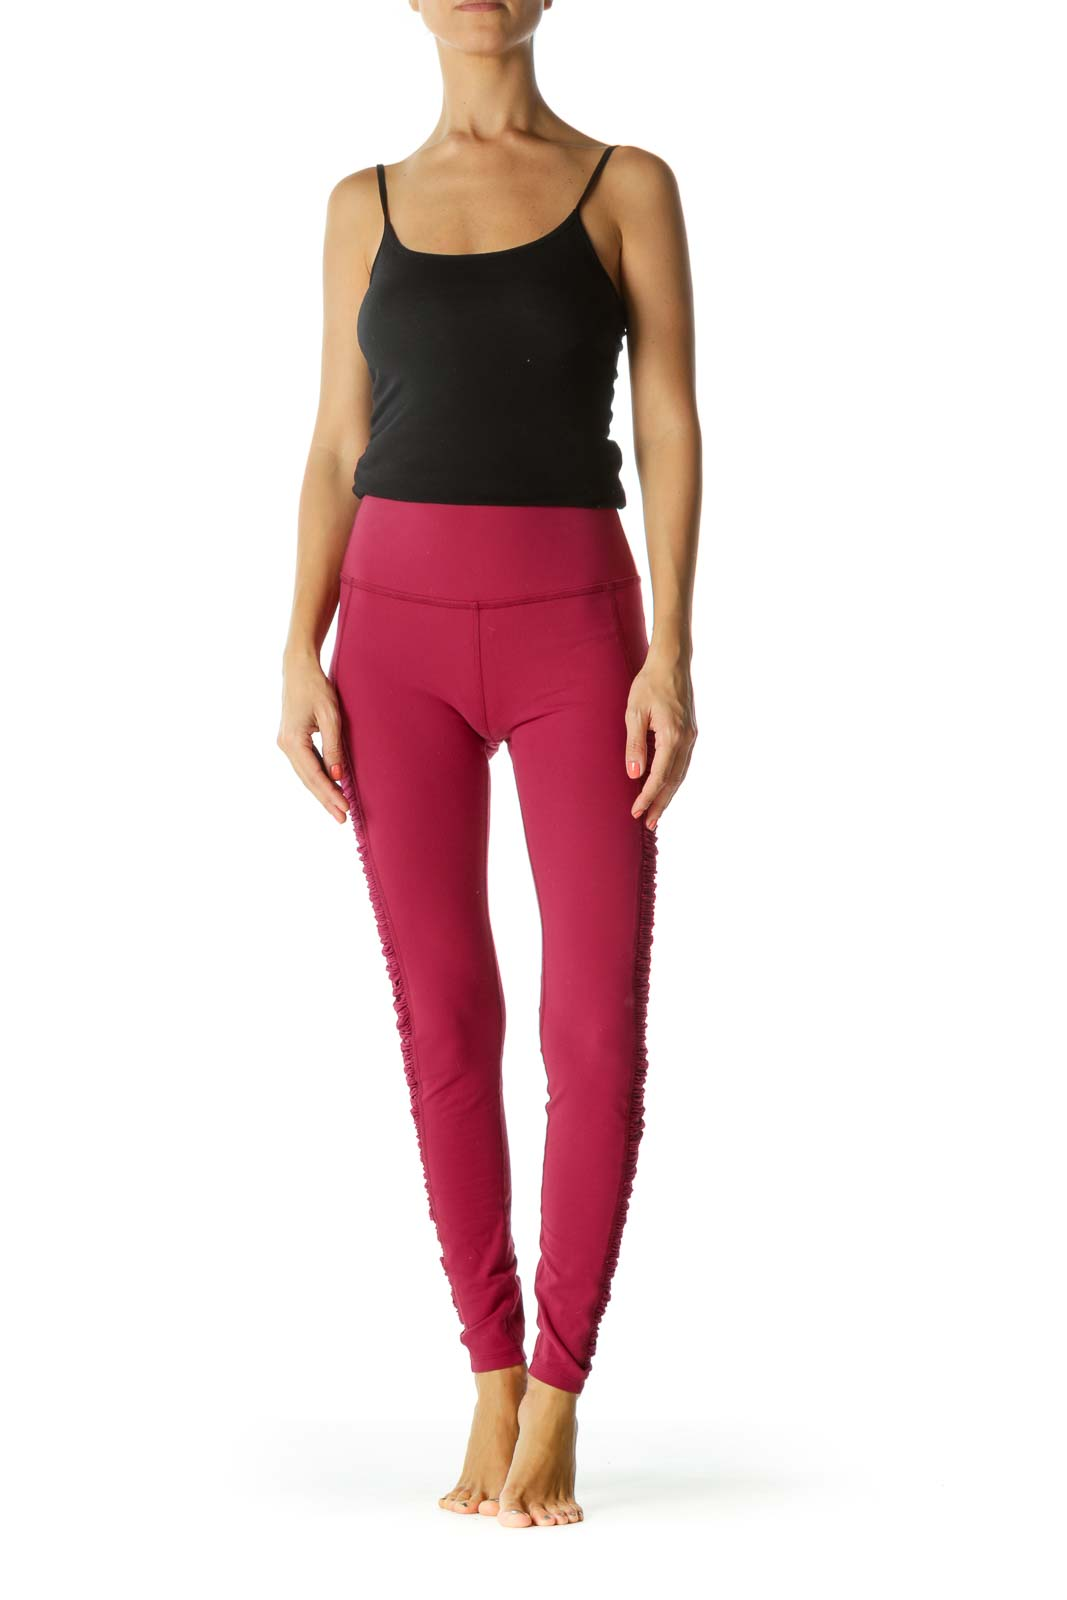 Magenta Burgundy Scrunch Leg Detail Mixed-Media Yoga Pants